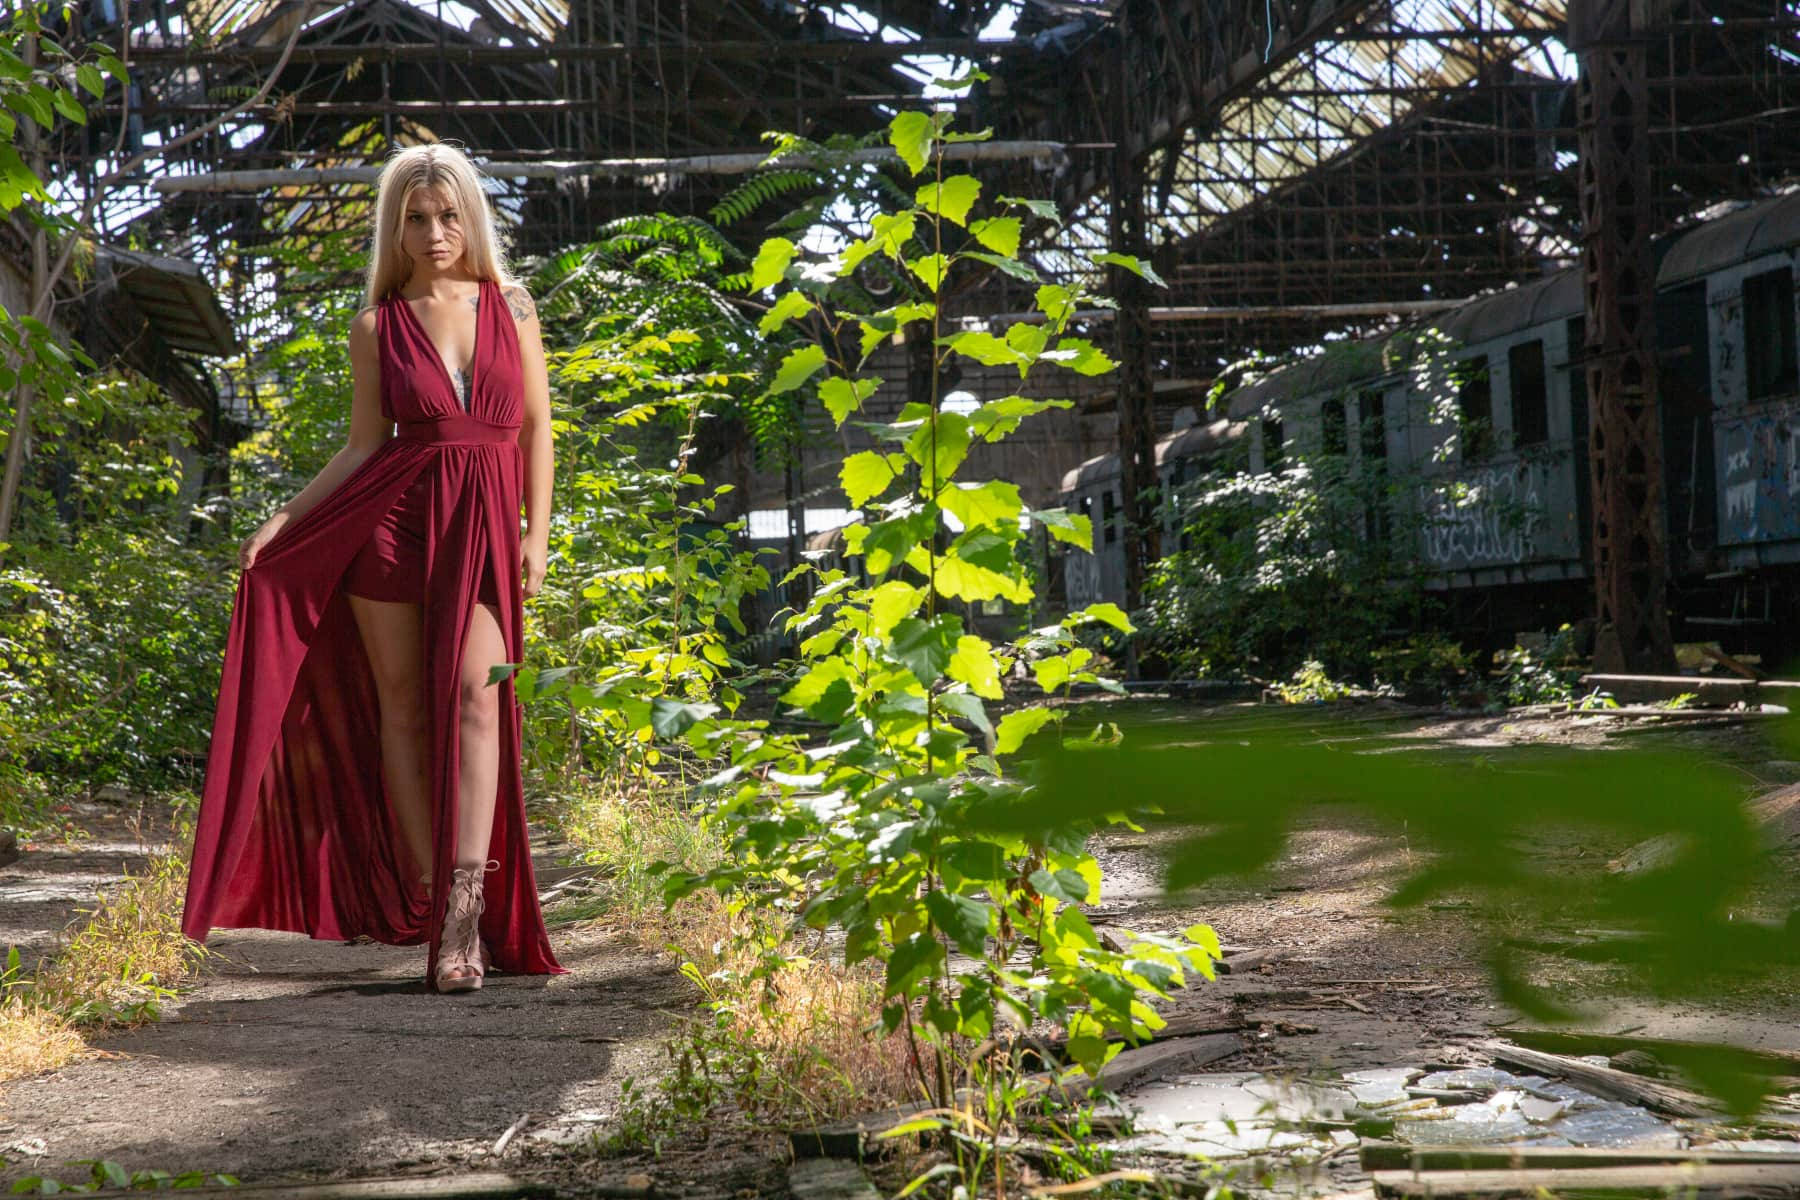 Royalty Free Image - Beautiful woman in red dress on an abandoned train station.